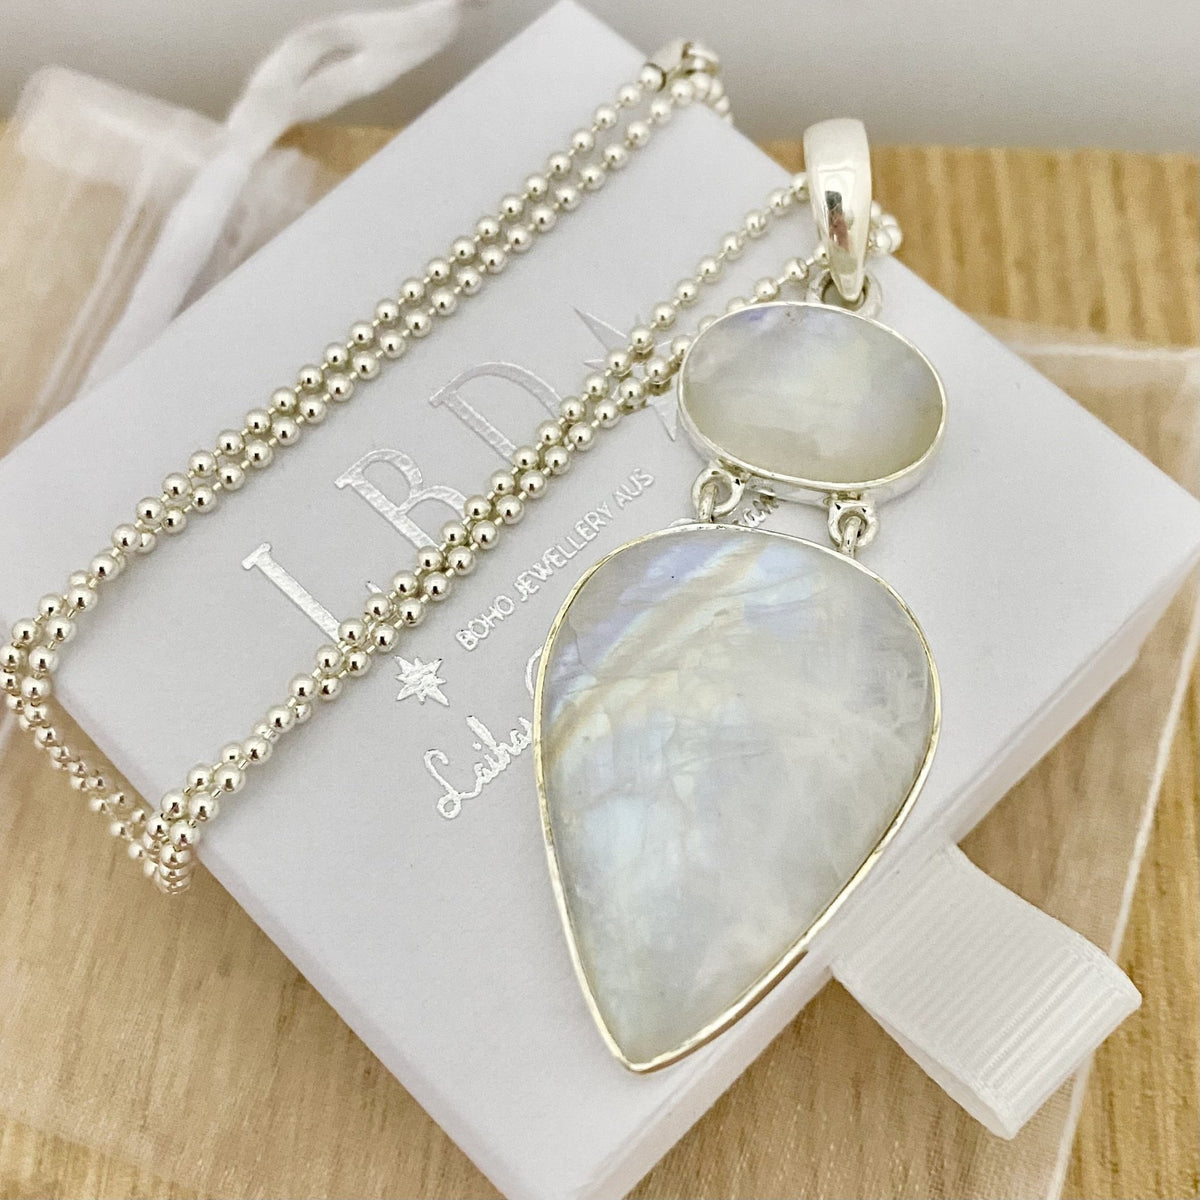 Laihas XXXLARGE Oval on Teardrop Rainbow Moonstone Necklace -2- - Laihas Bohemian Dreaming